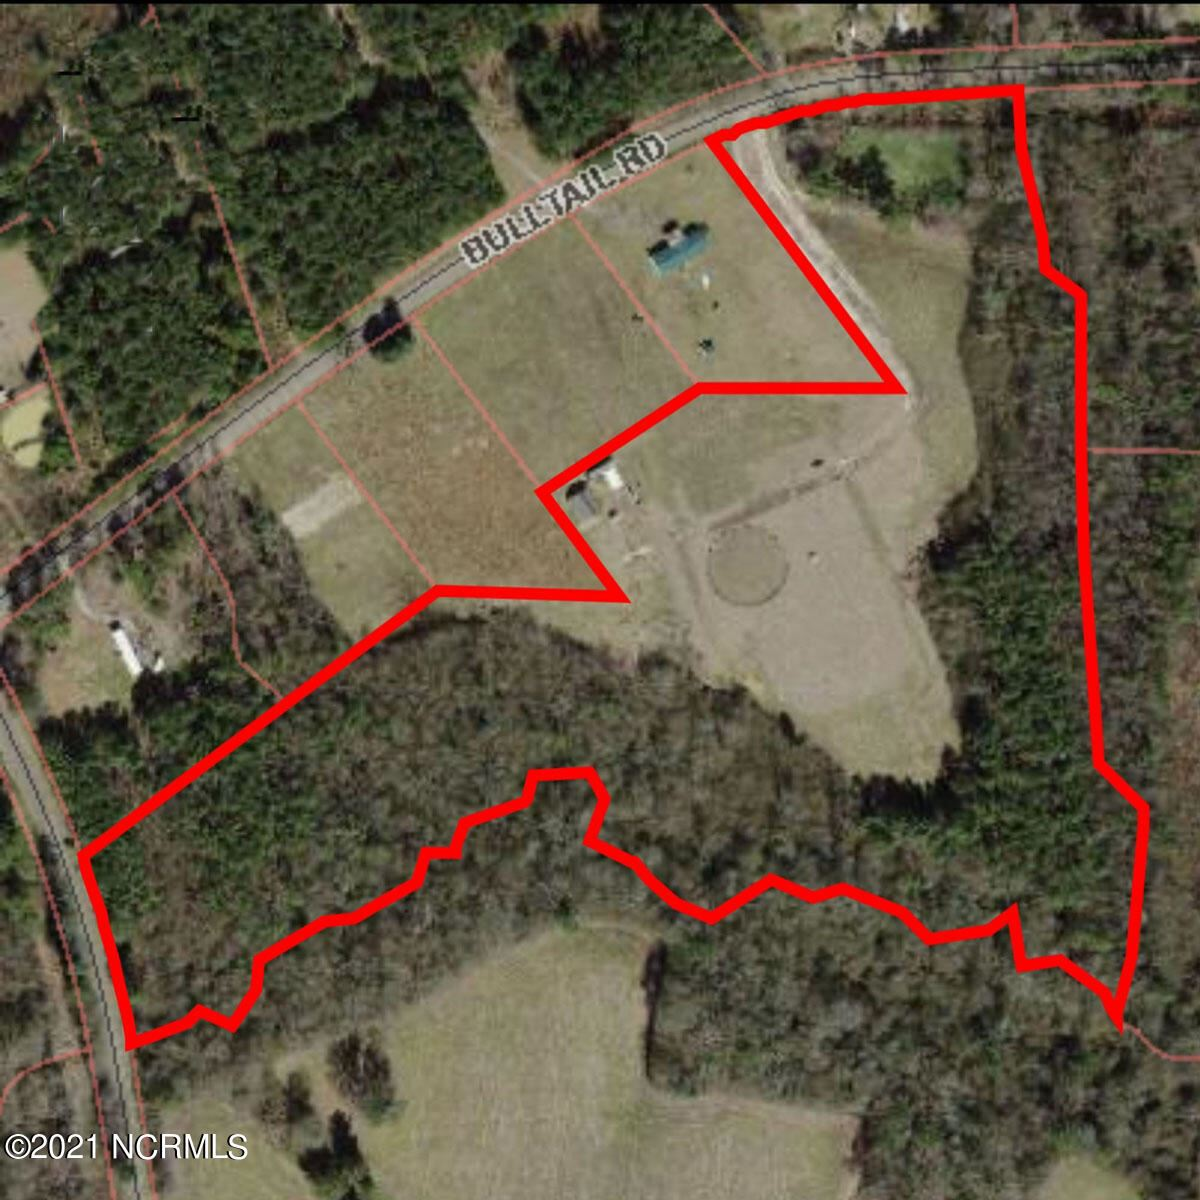 Photo of 0 Indian Hill & Bulltail Road, Ivanhoe, NC 28447 (MLS # 100293783)